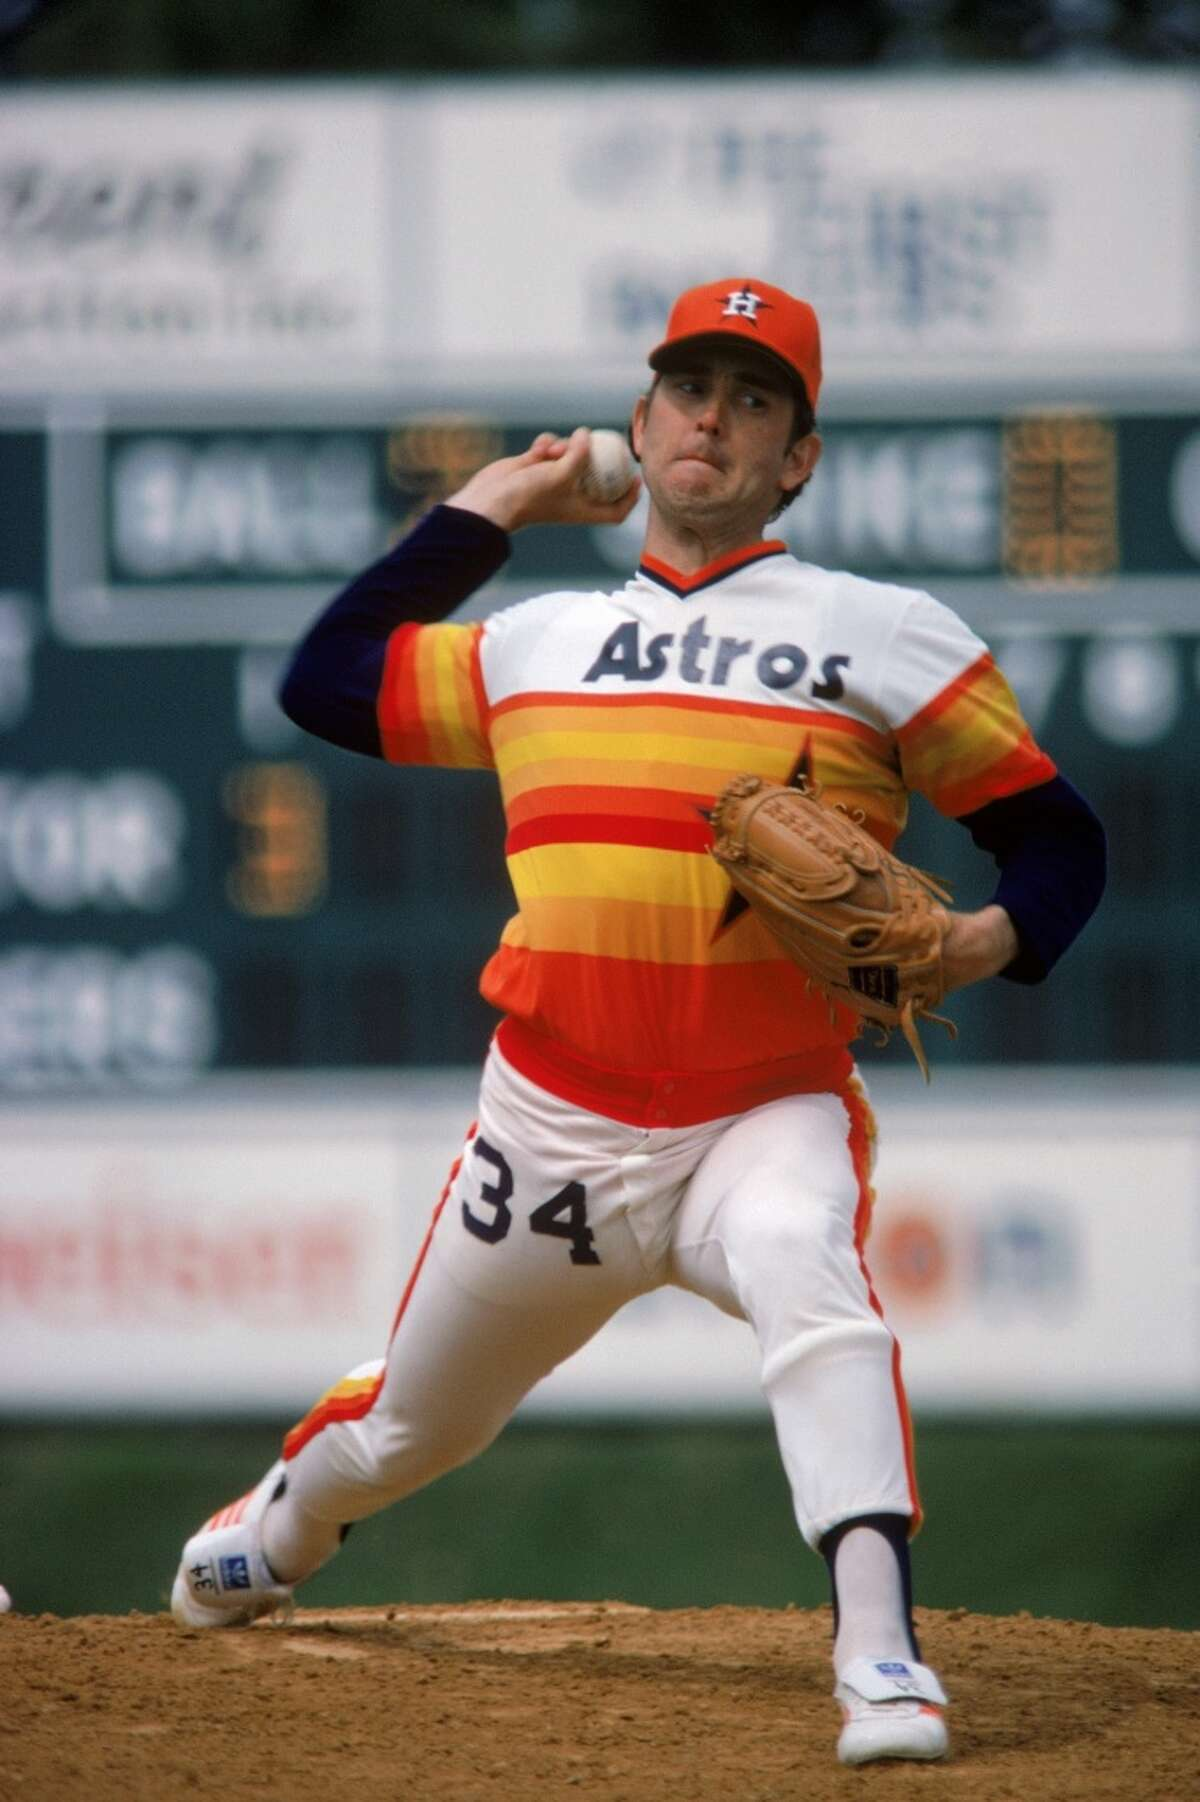 ASTROS 4. Nolan Ryan, No. 34 He's Texas baseball royalty. There are few more iconic sights in Astros history than Ryan dominating hitters while wearing the rainbow jersey. How popular is Ryan? His throwback jerseys are the highest-selling in Kansas and North Carolina.